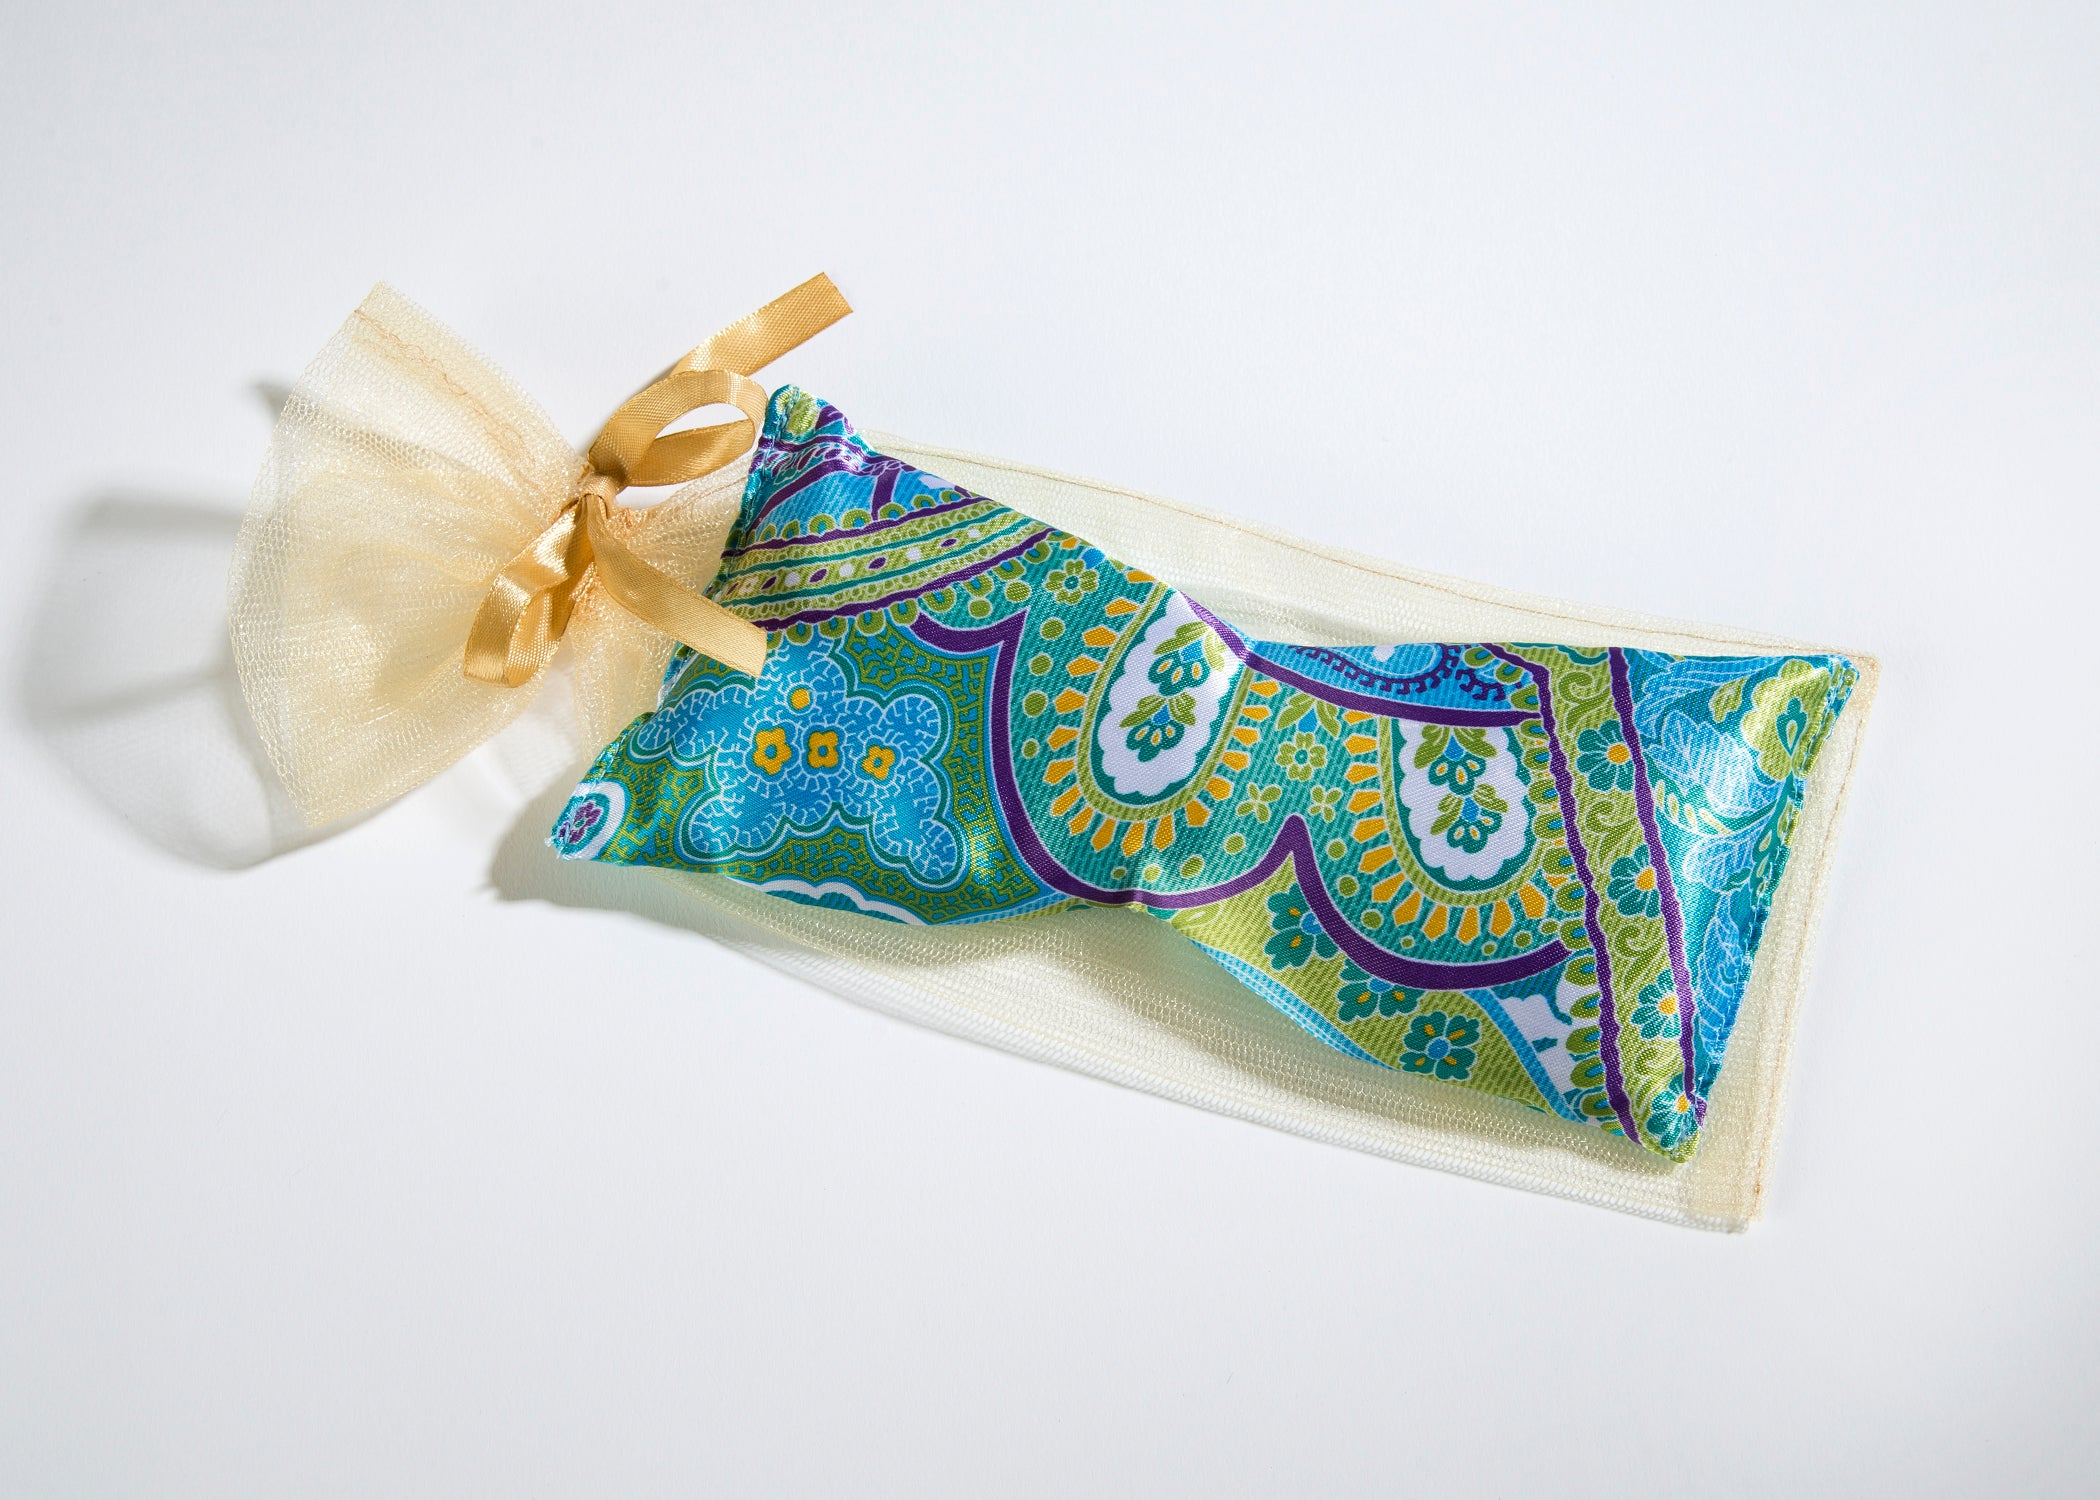 OceanAire Eye Pillow in Palm Beach Paisley Silk